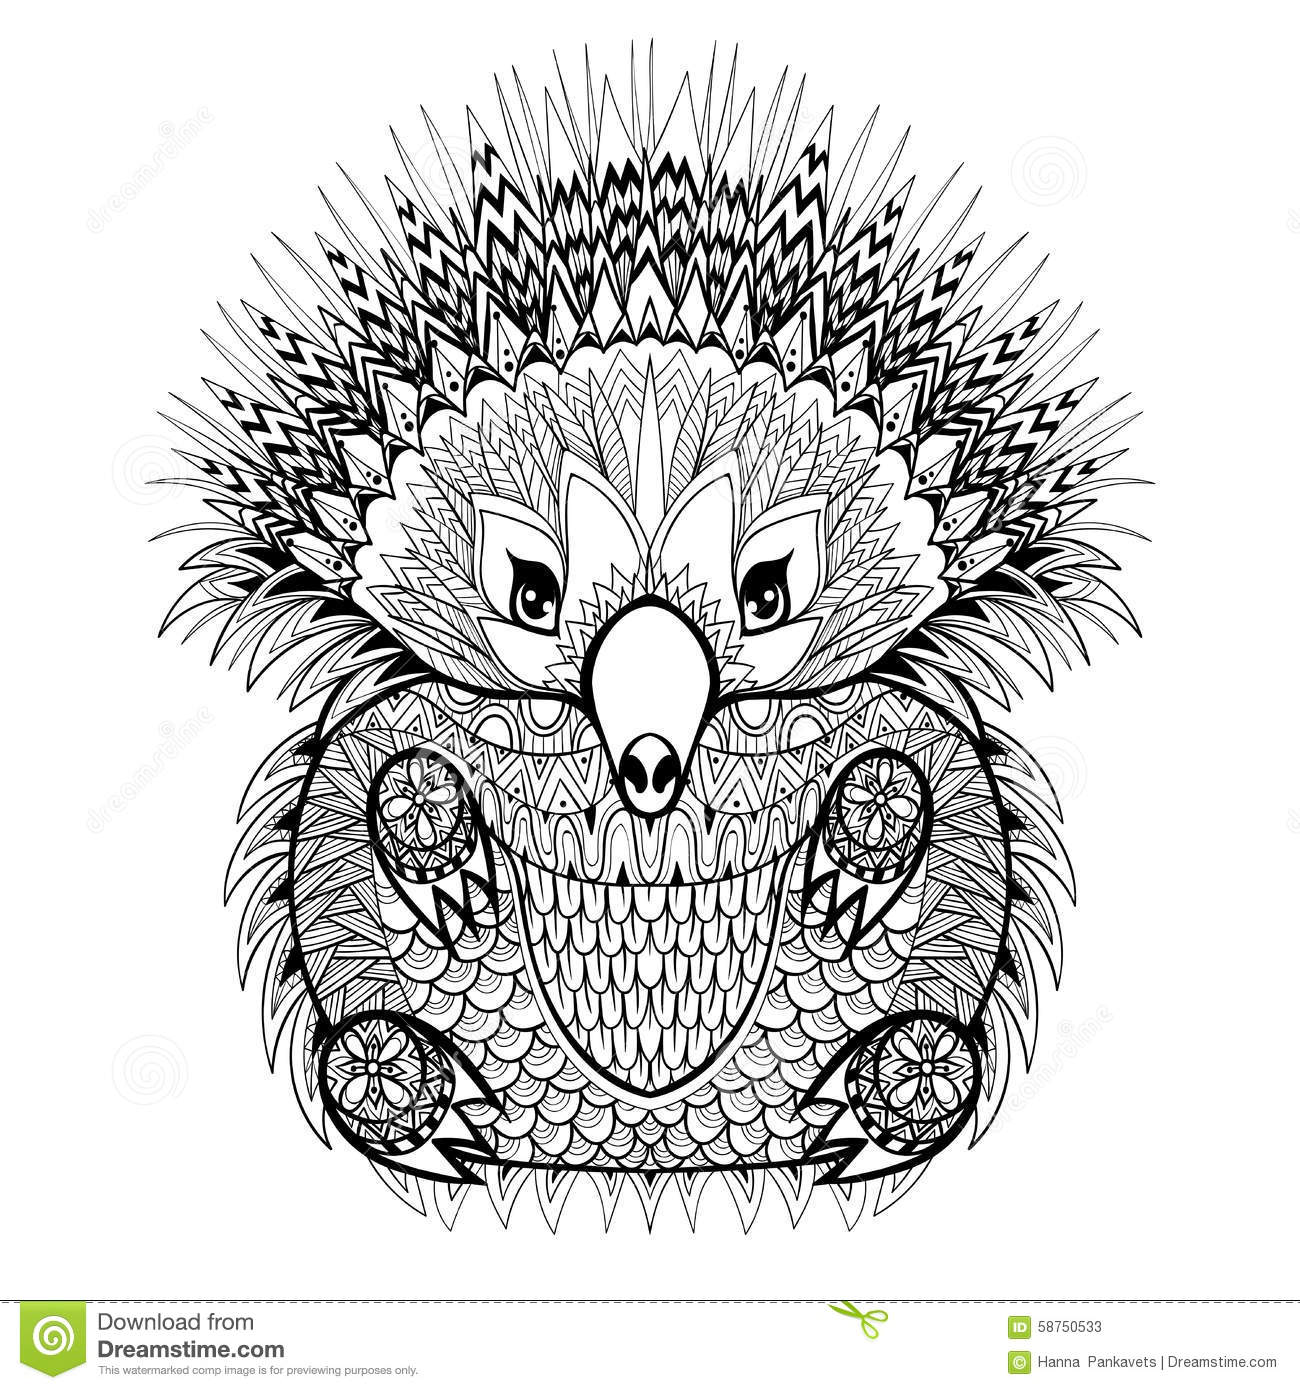 Dinosaur Coloring Page Kids Coloring likewise Cute Baby Animals Coloring Pages besides Cacador E Sua Presa together with Lemonade Pink 312153877 furthermore Beautiful Girl Colouring Page. on deer coloring pages for adults